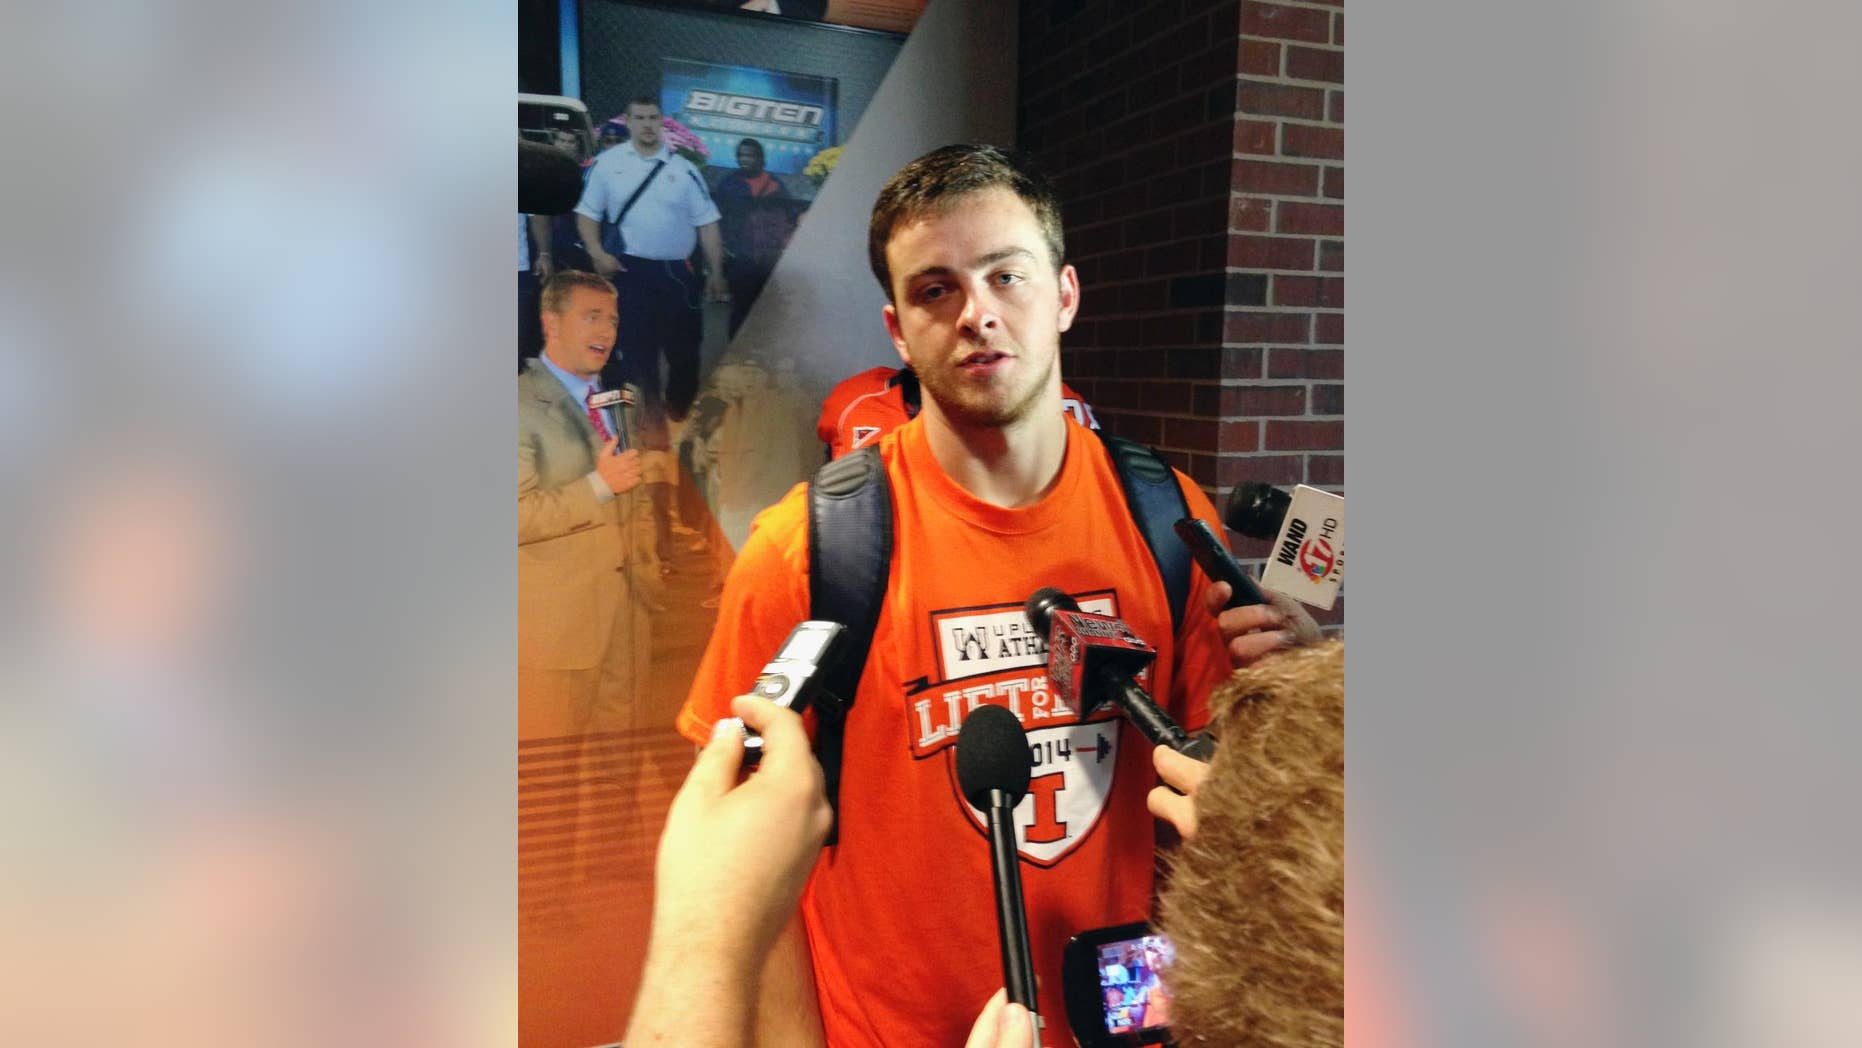 Illinois quarterback Wes Lunt talks with reporters at Memorial Stadium in Champaign, Ill., on Wednesday, Aug. 20, 2014, after learning he will be the starting Illini quarterback. Lunt transferred from Oklahoma State after starting as a freshman but sat out last season under NCAA transfer rules. Illinois starts its season Aug. 30 against Youngstown State. (AP Photo/David Mercer)